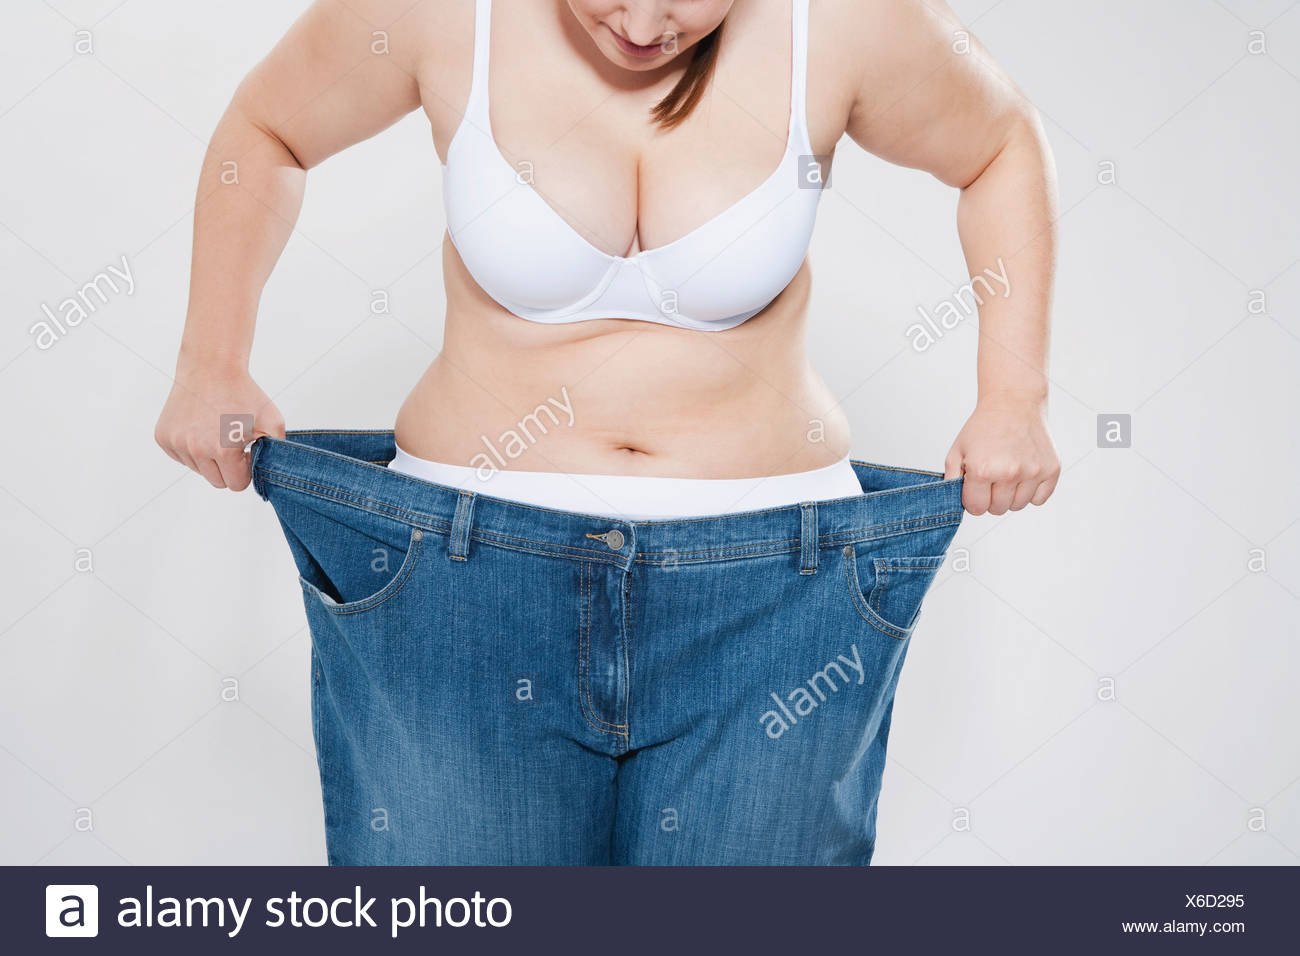 Young chubby woman with oversized pant - Stock Image